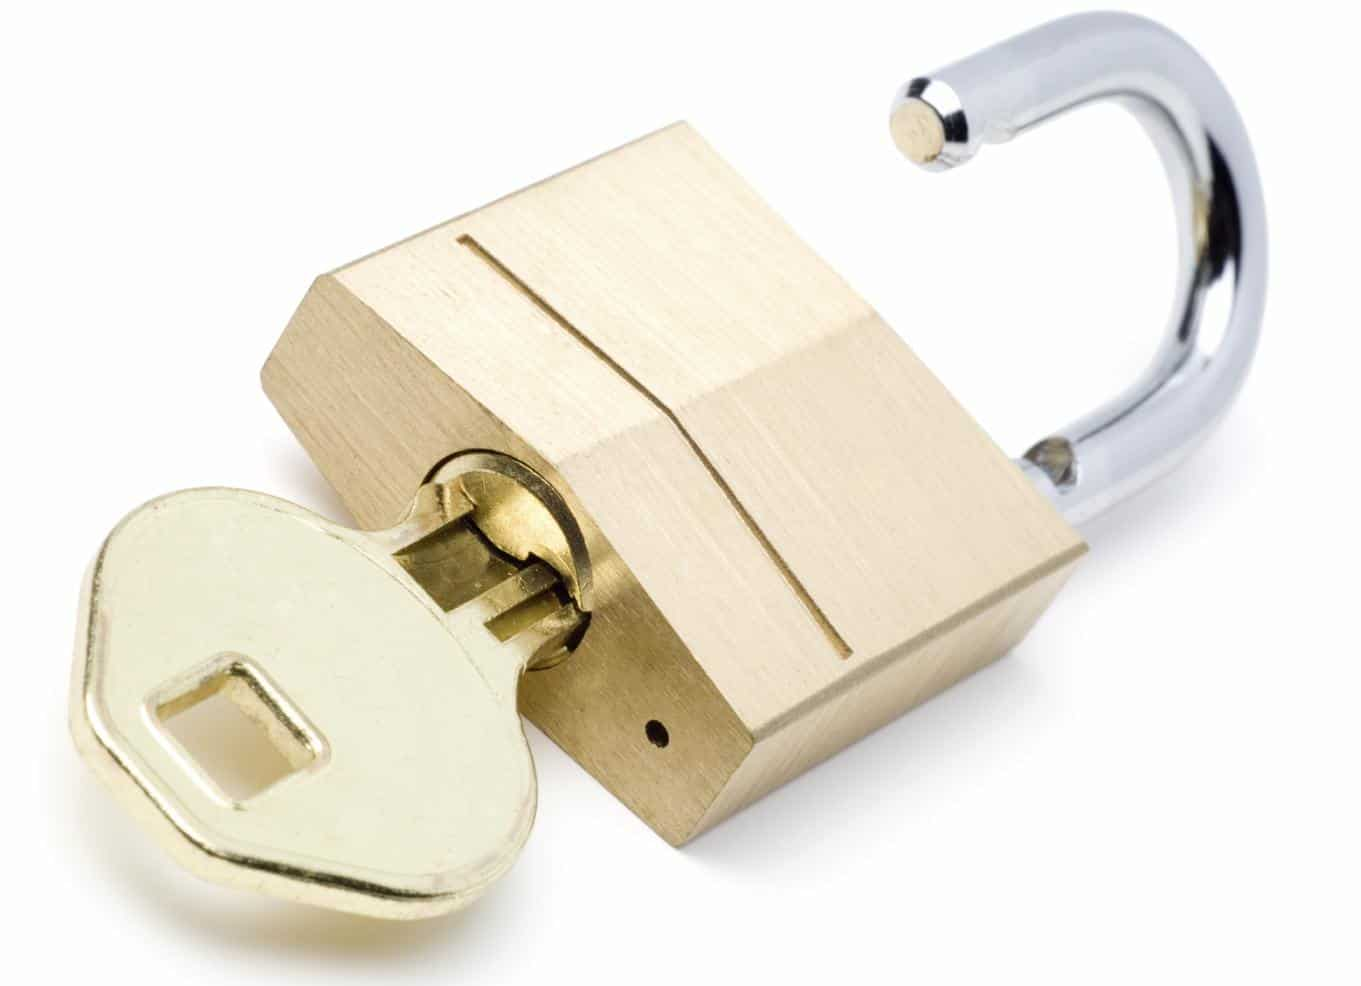 lock-and-key-chula-vista